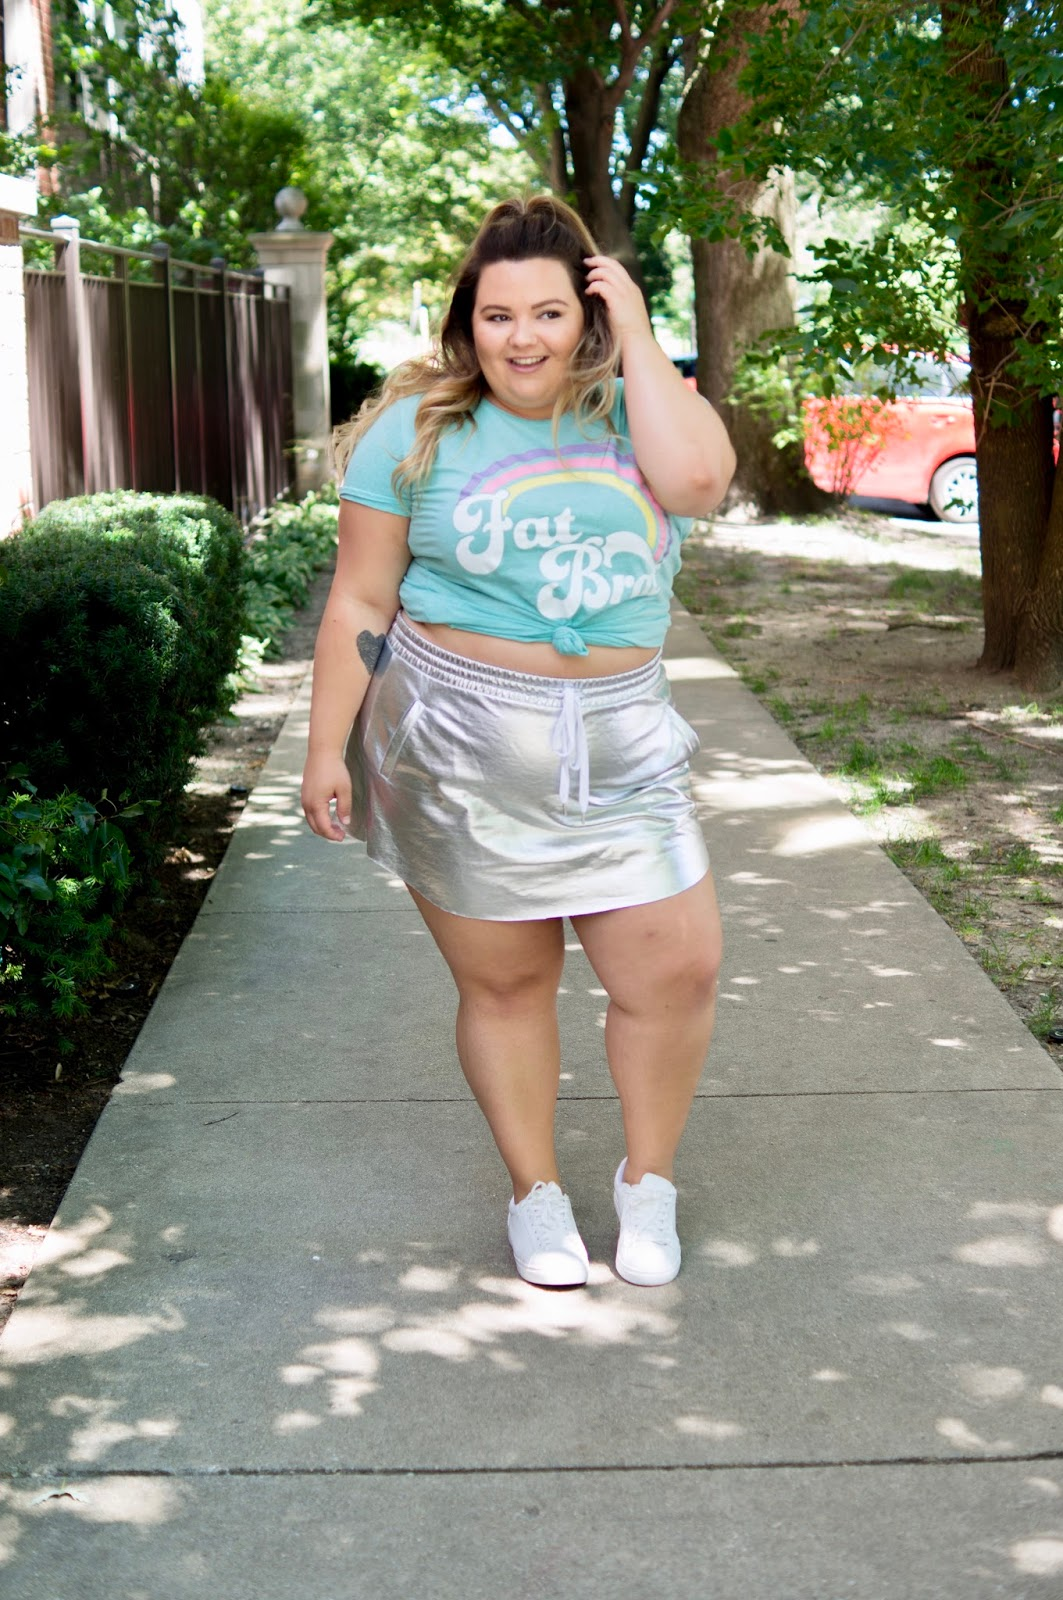 fat acceptance,fat girl flow, corissa, fat brat t-shirt, reclaim fat, fat is not a bad word, natalie in the city, Chicago, plus size fashion blogger, Chicago plus size fashion blogger, scorch magazine, fat and fabulous, curves and confidence, midwest blogger, Chicago fashion, forever 21 metallic skirt